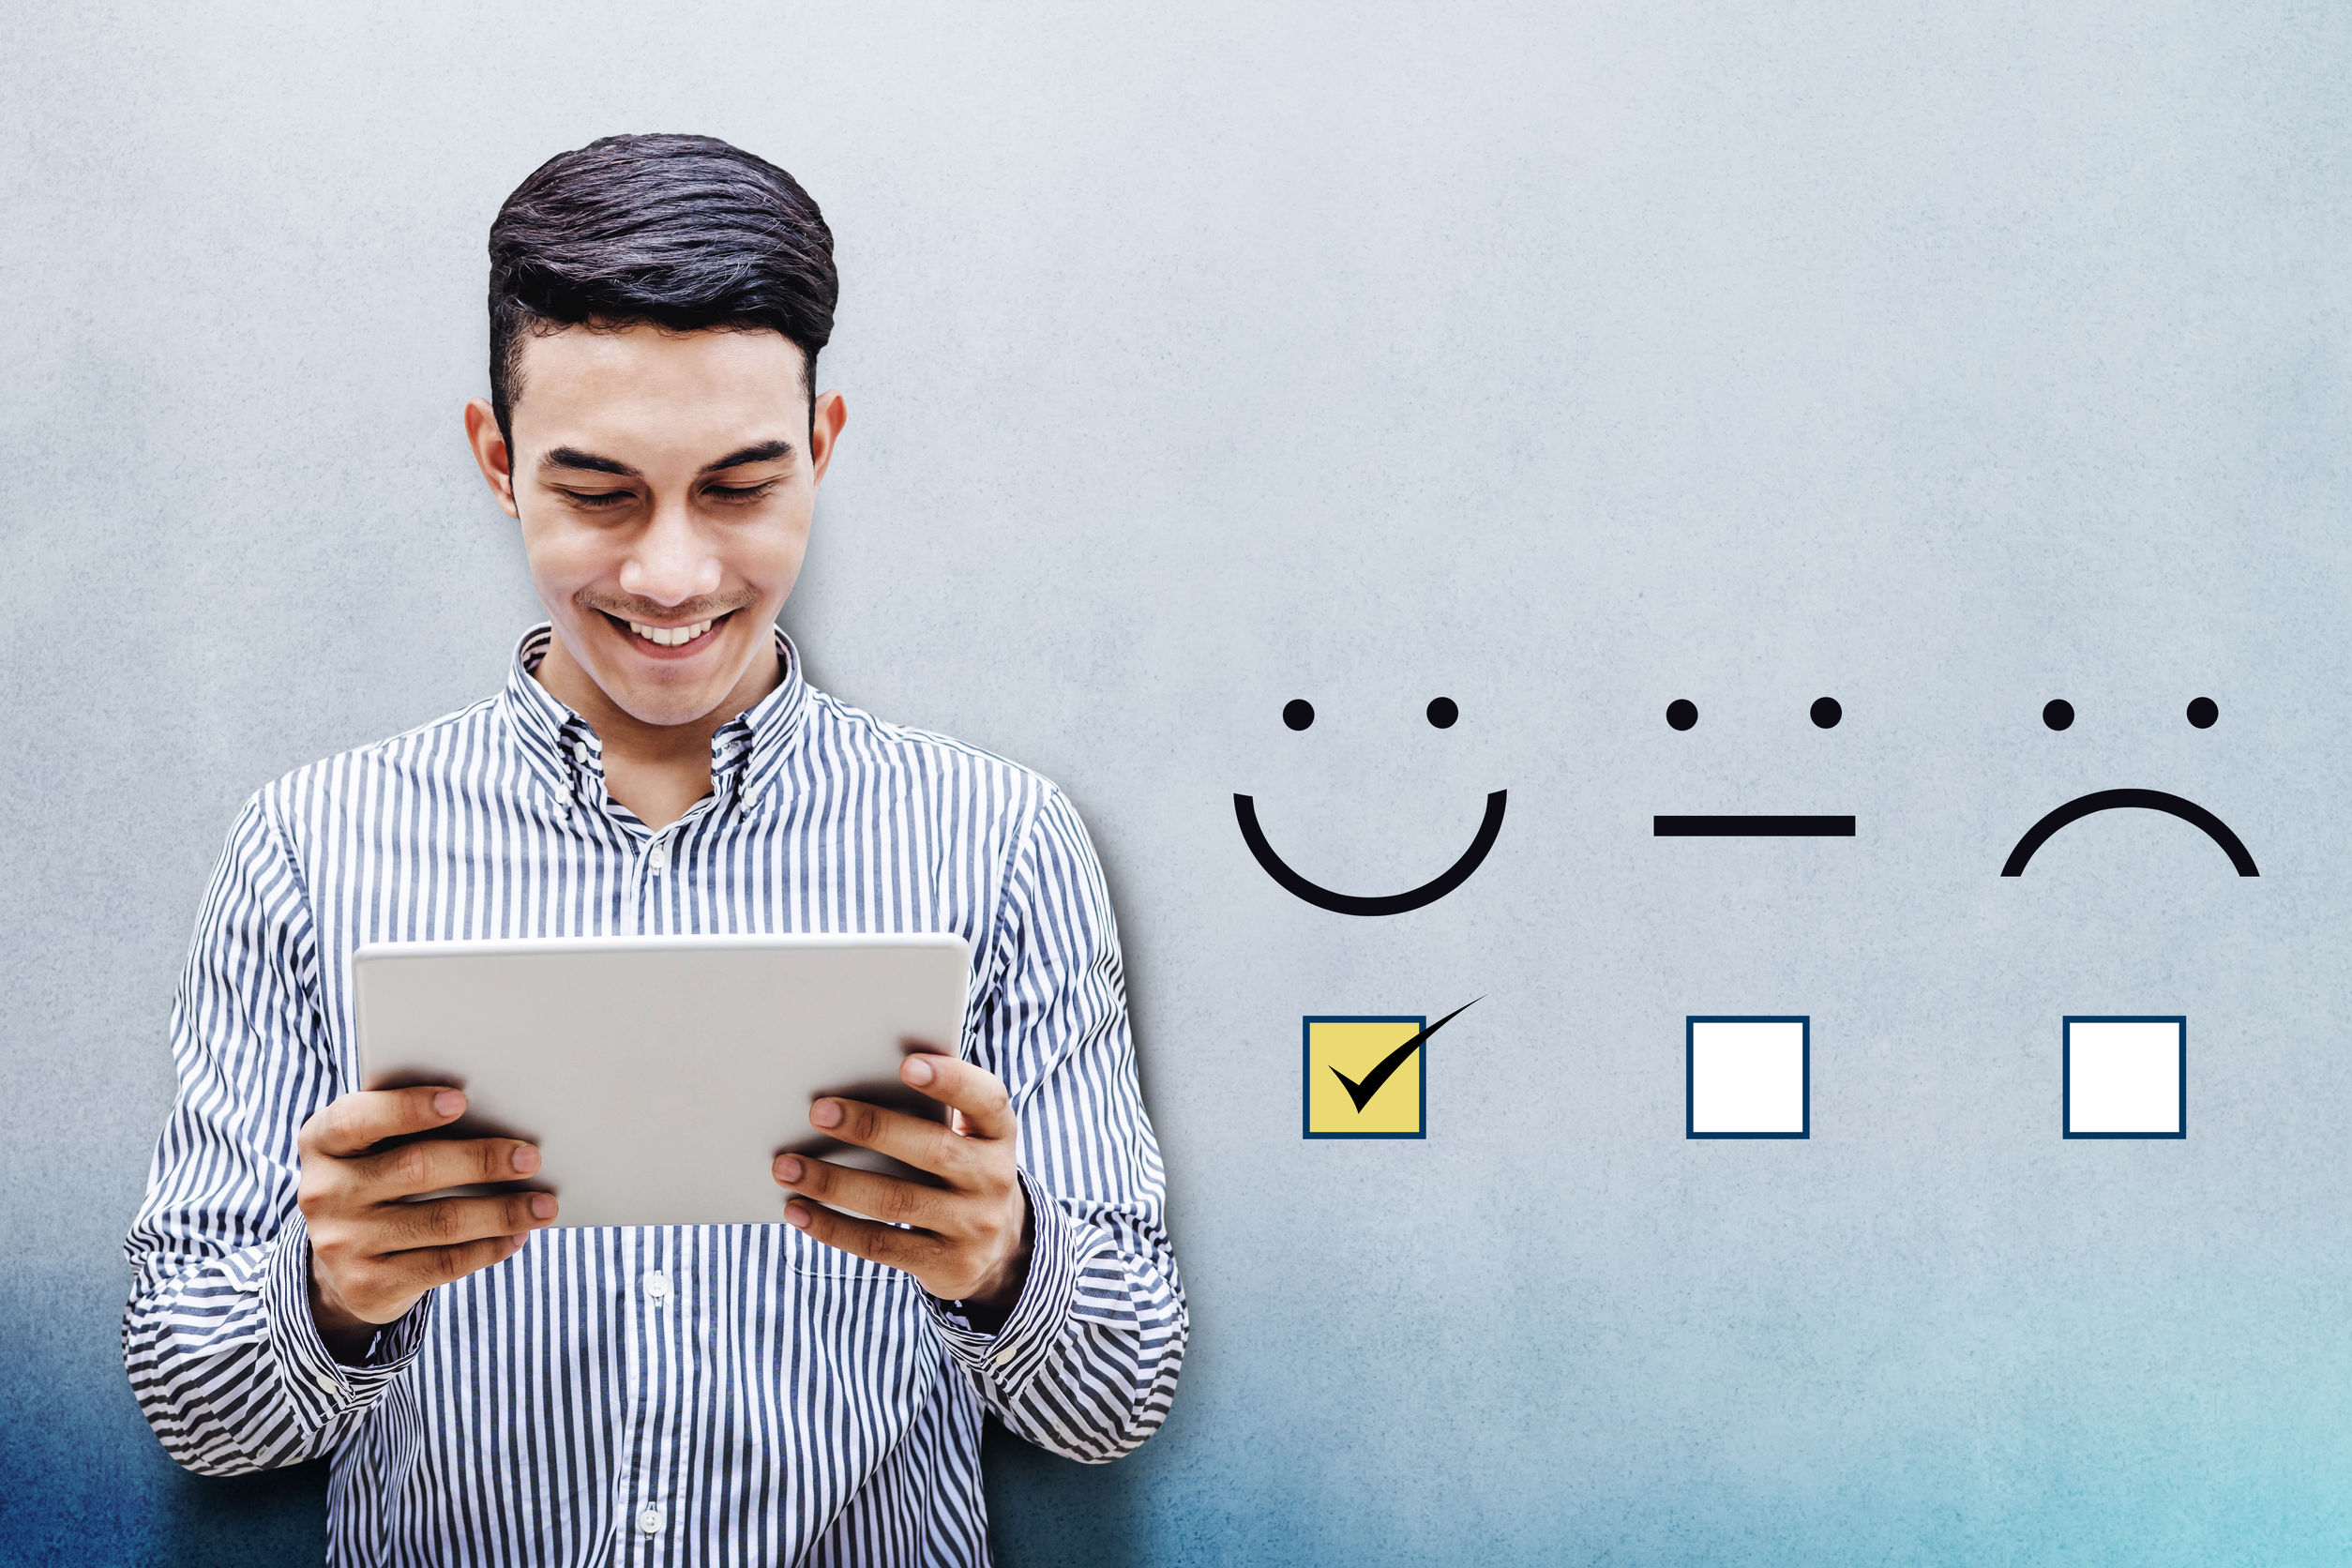 4 Ways to Streamline Operations and Delight Customers in 2021